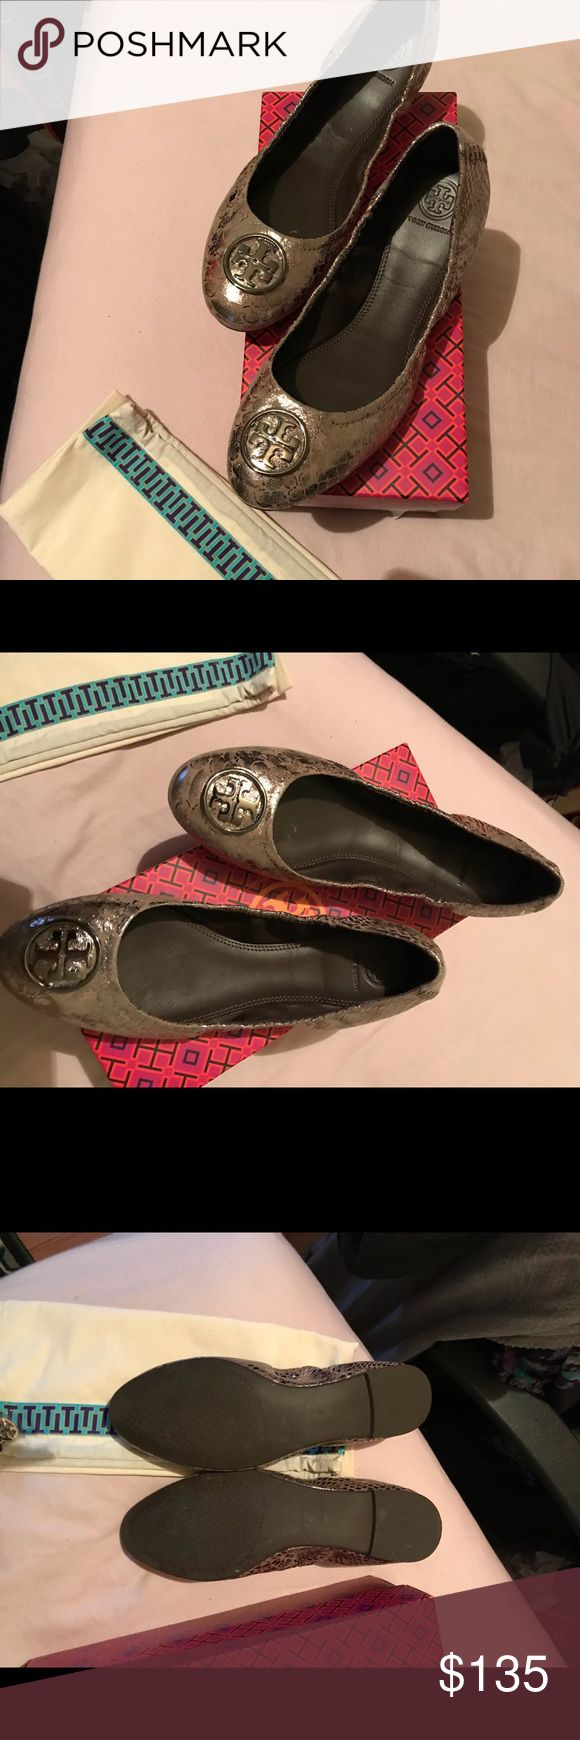 Brand new Tory Burch flats. Brand new Tory Burch flats. Tan and silver in a snake print.  Shoe has elastic around the edges for comfort and sitting around the foot. Bought at Nordstrom rack tags still on the box from shoes but not original box of shoes also comes with dust bag. Make A reasonable offer Tory Burch Shoes Flats & Loafers